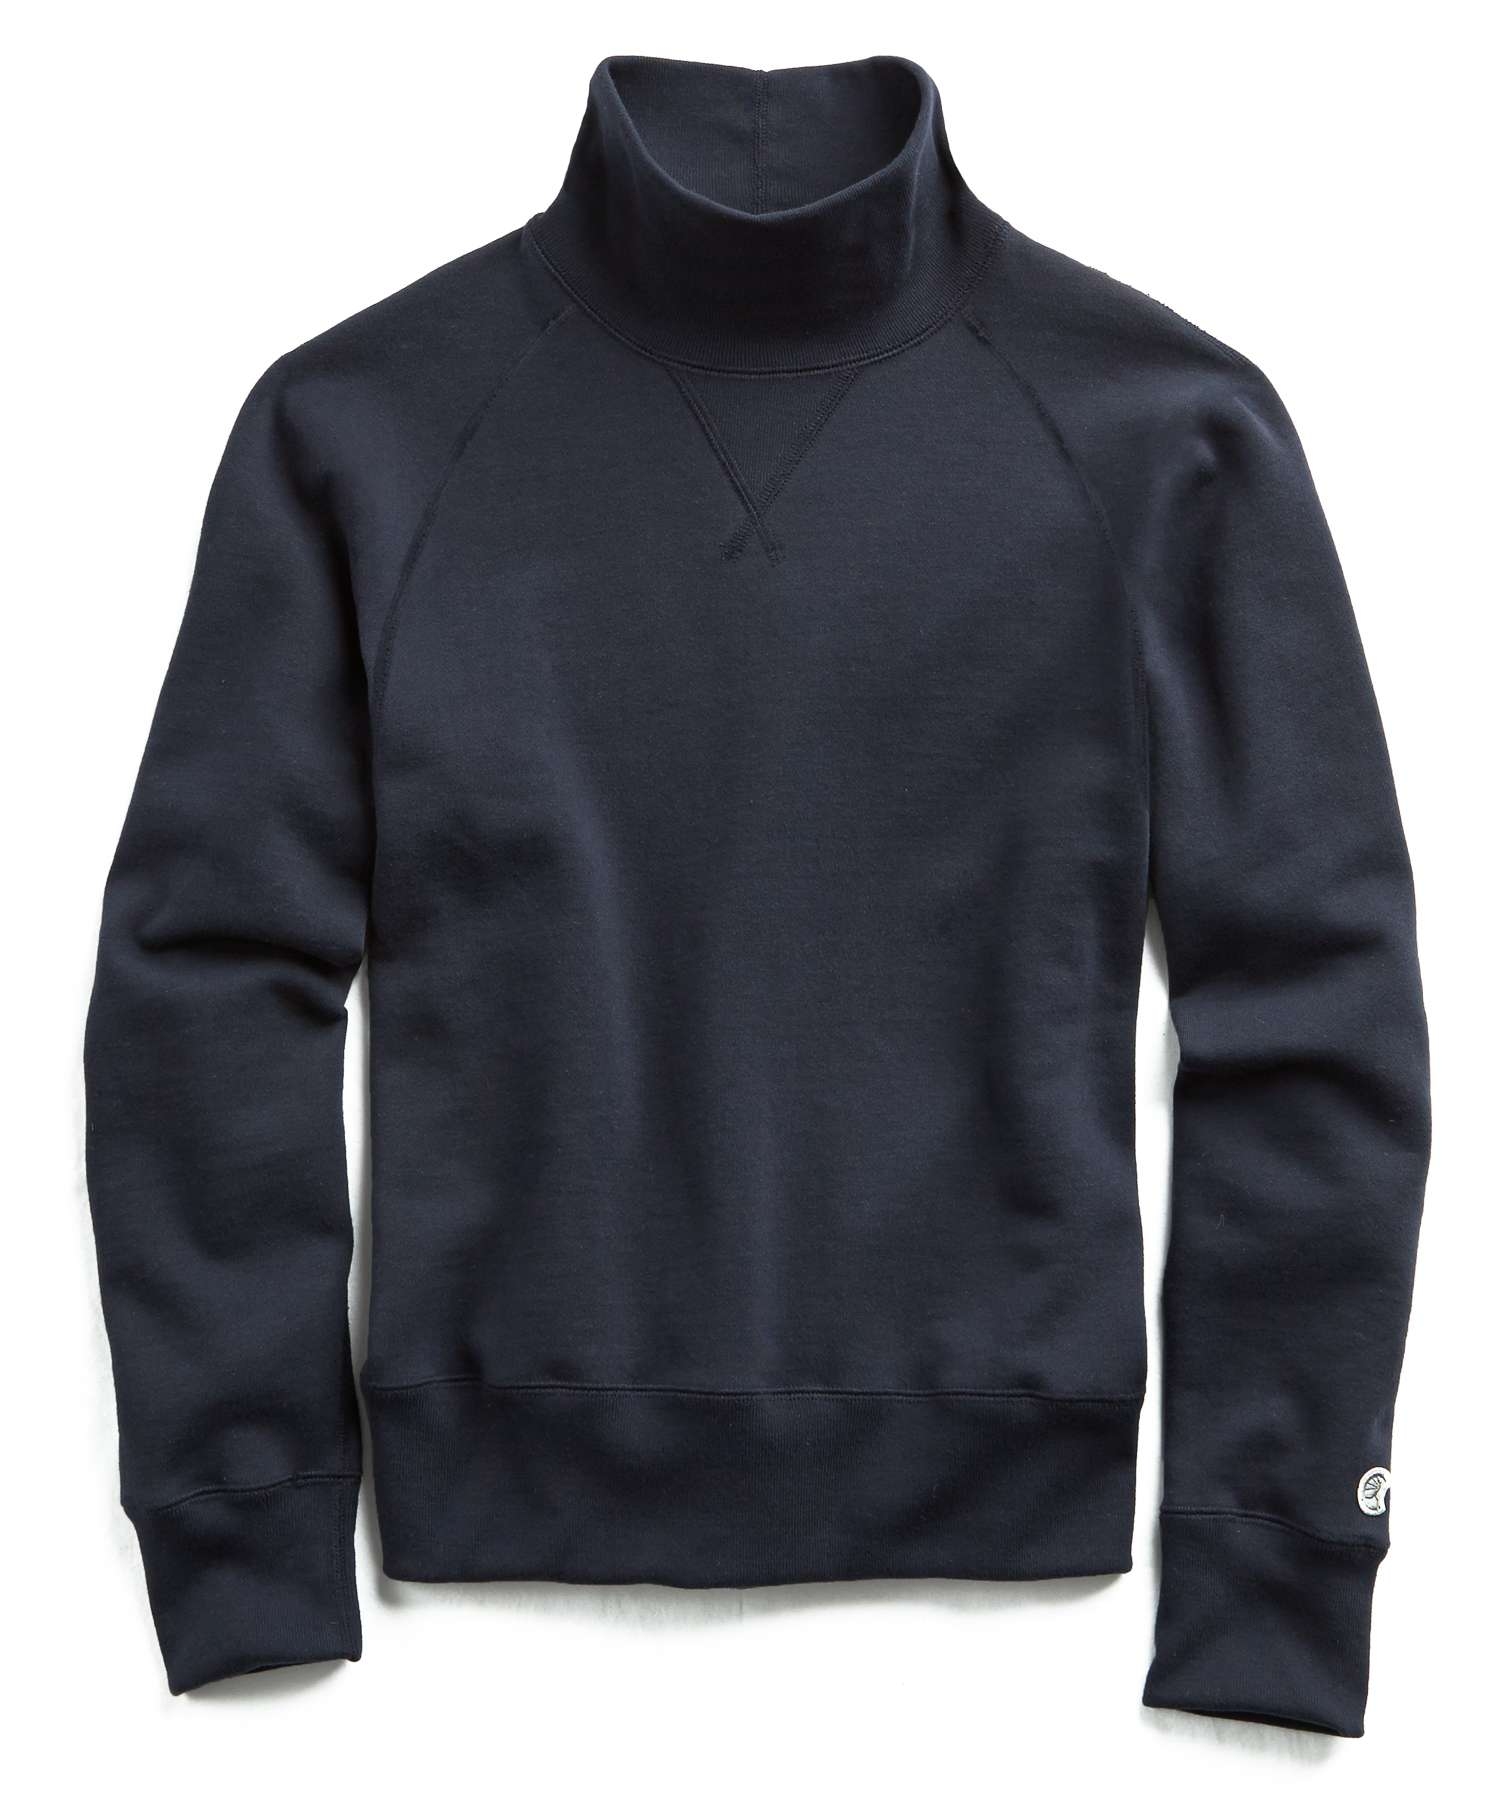 Heavyweight Turtleneck Sweatshirt in Navy